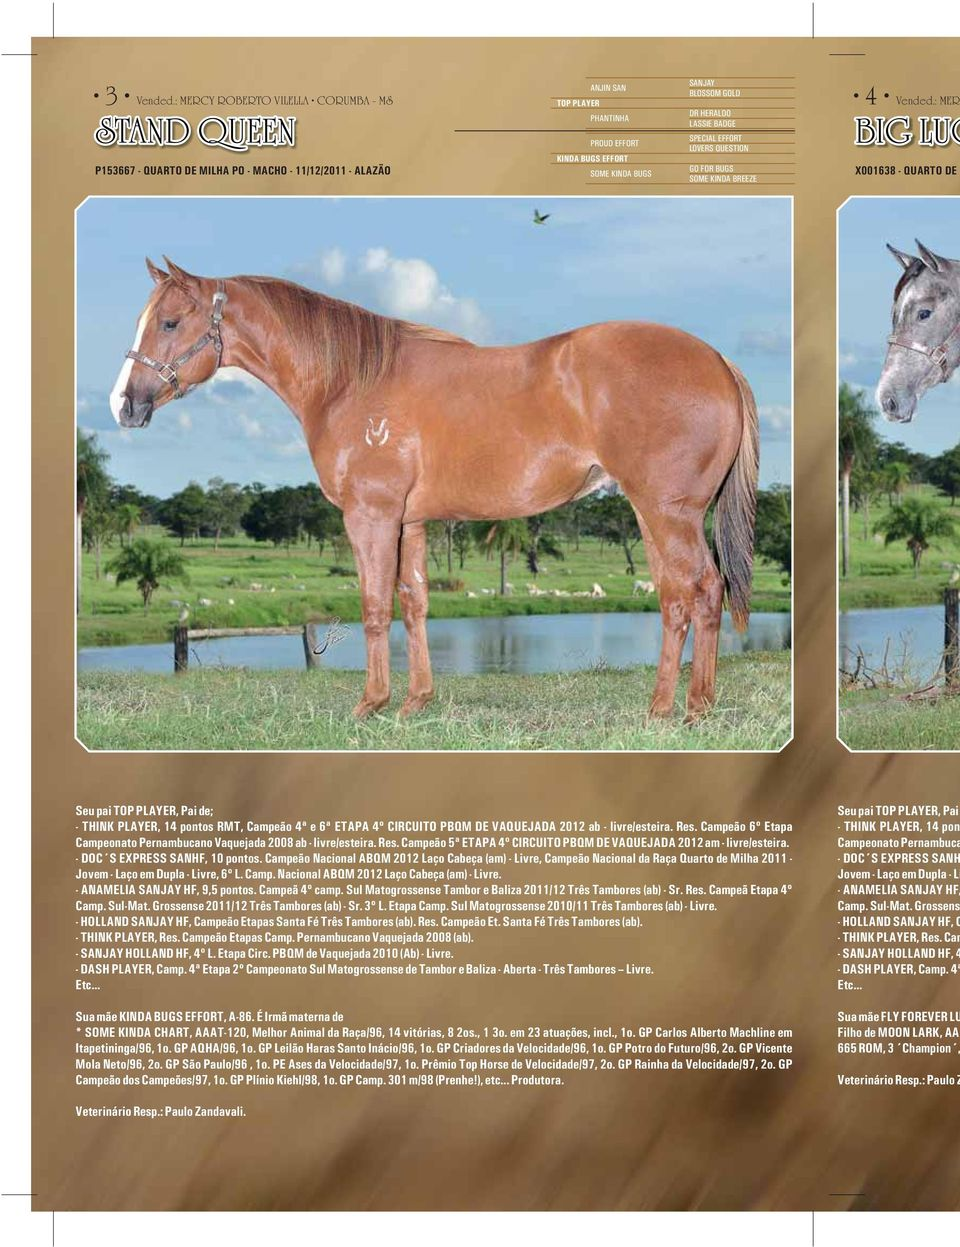 BLOSSOM GOLD DR HERALDO LASSIE BADGE SPECIAL EFFORT LOVERS QUESTION GO FOR BUGS SOME KINDA BREEZE 4 Vended.